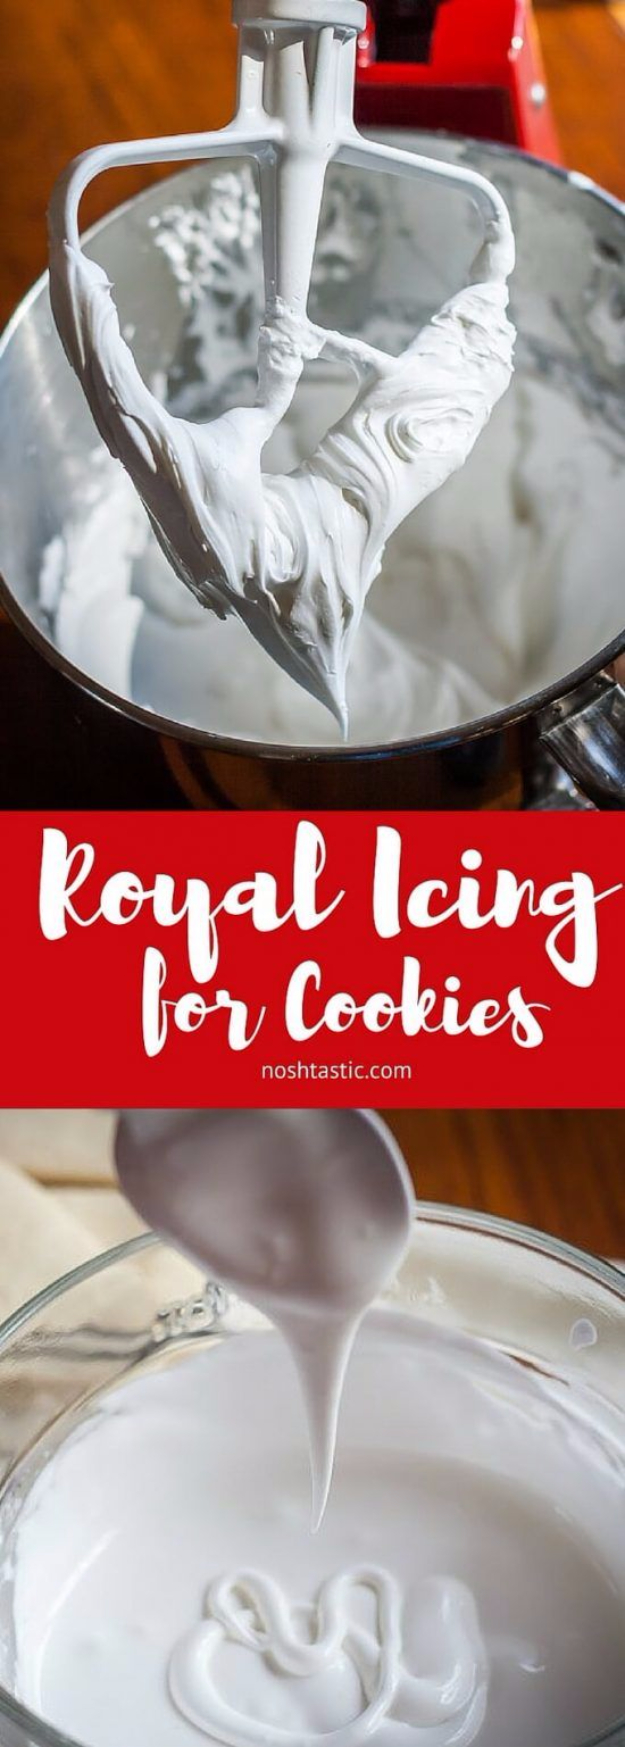 Best Baking Hacks - Royal Icing For Cookies - DIY Cooking Tips and Tricks for Baking Recipes - Quick Ways to Bake Cake, Cupcakes, Desserts and Cookies - Kitchen Lifehacks for Bakers